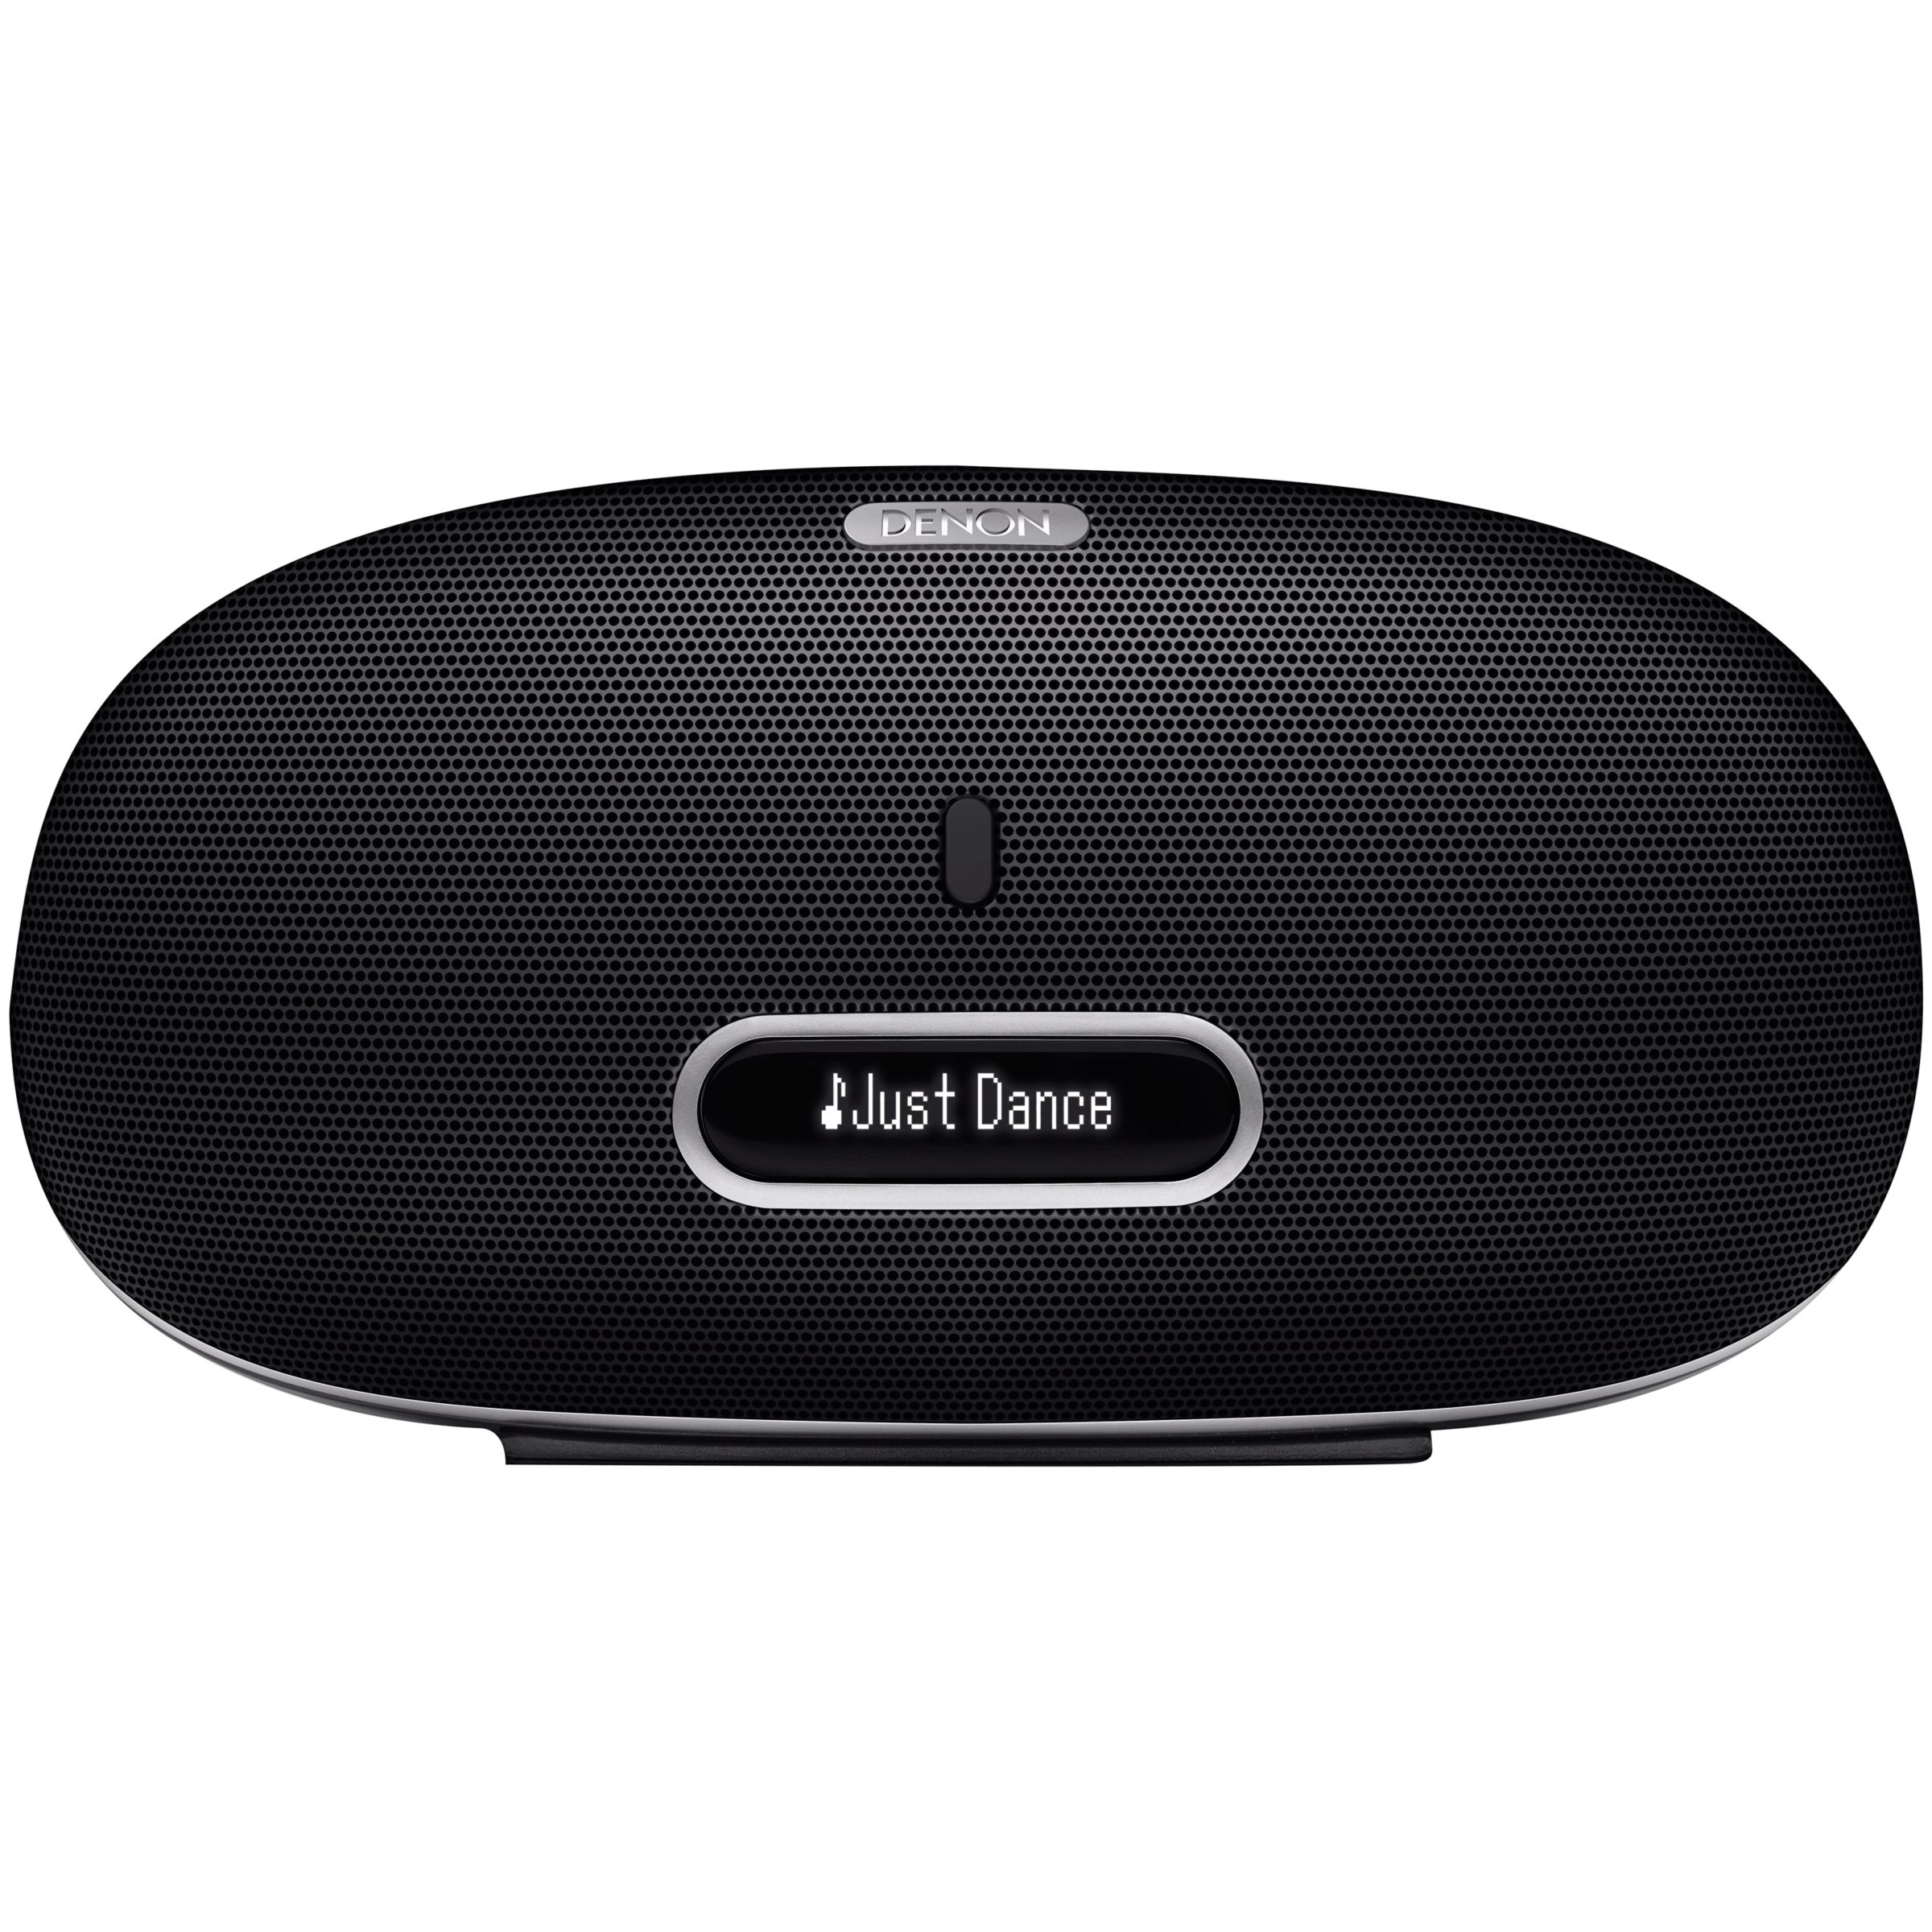 Denon D300 Cocoon Portable Wireless iPod Dock with Apple Airplay, Black